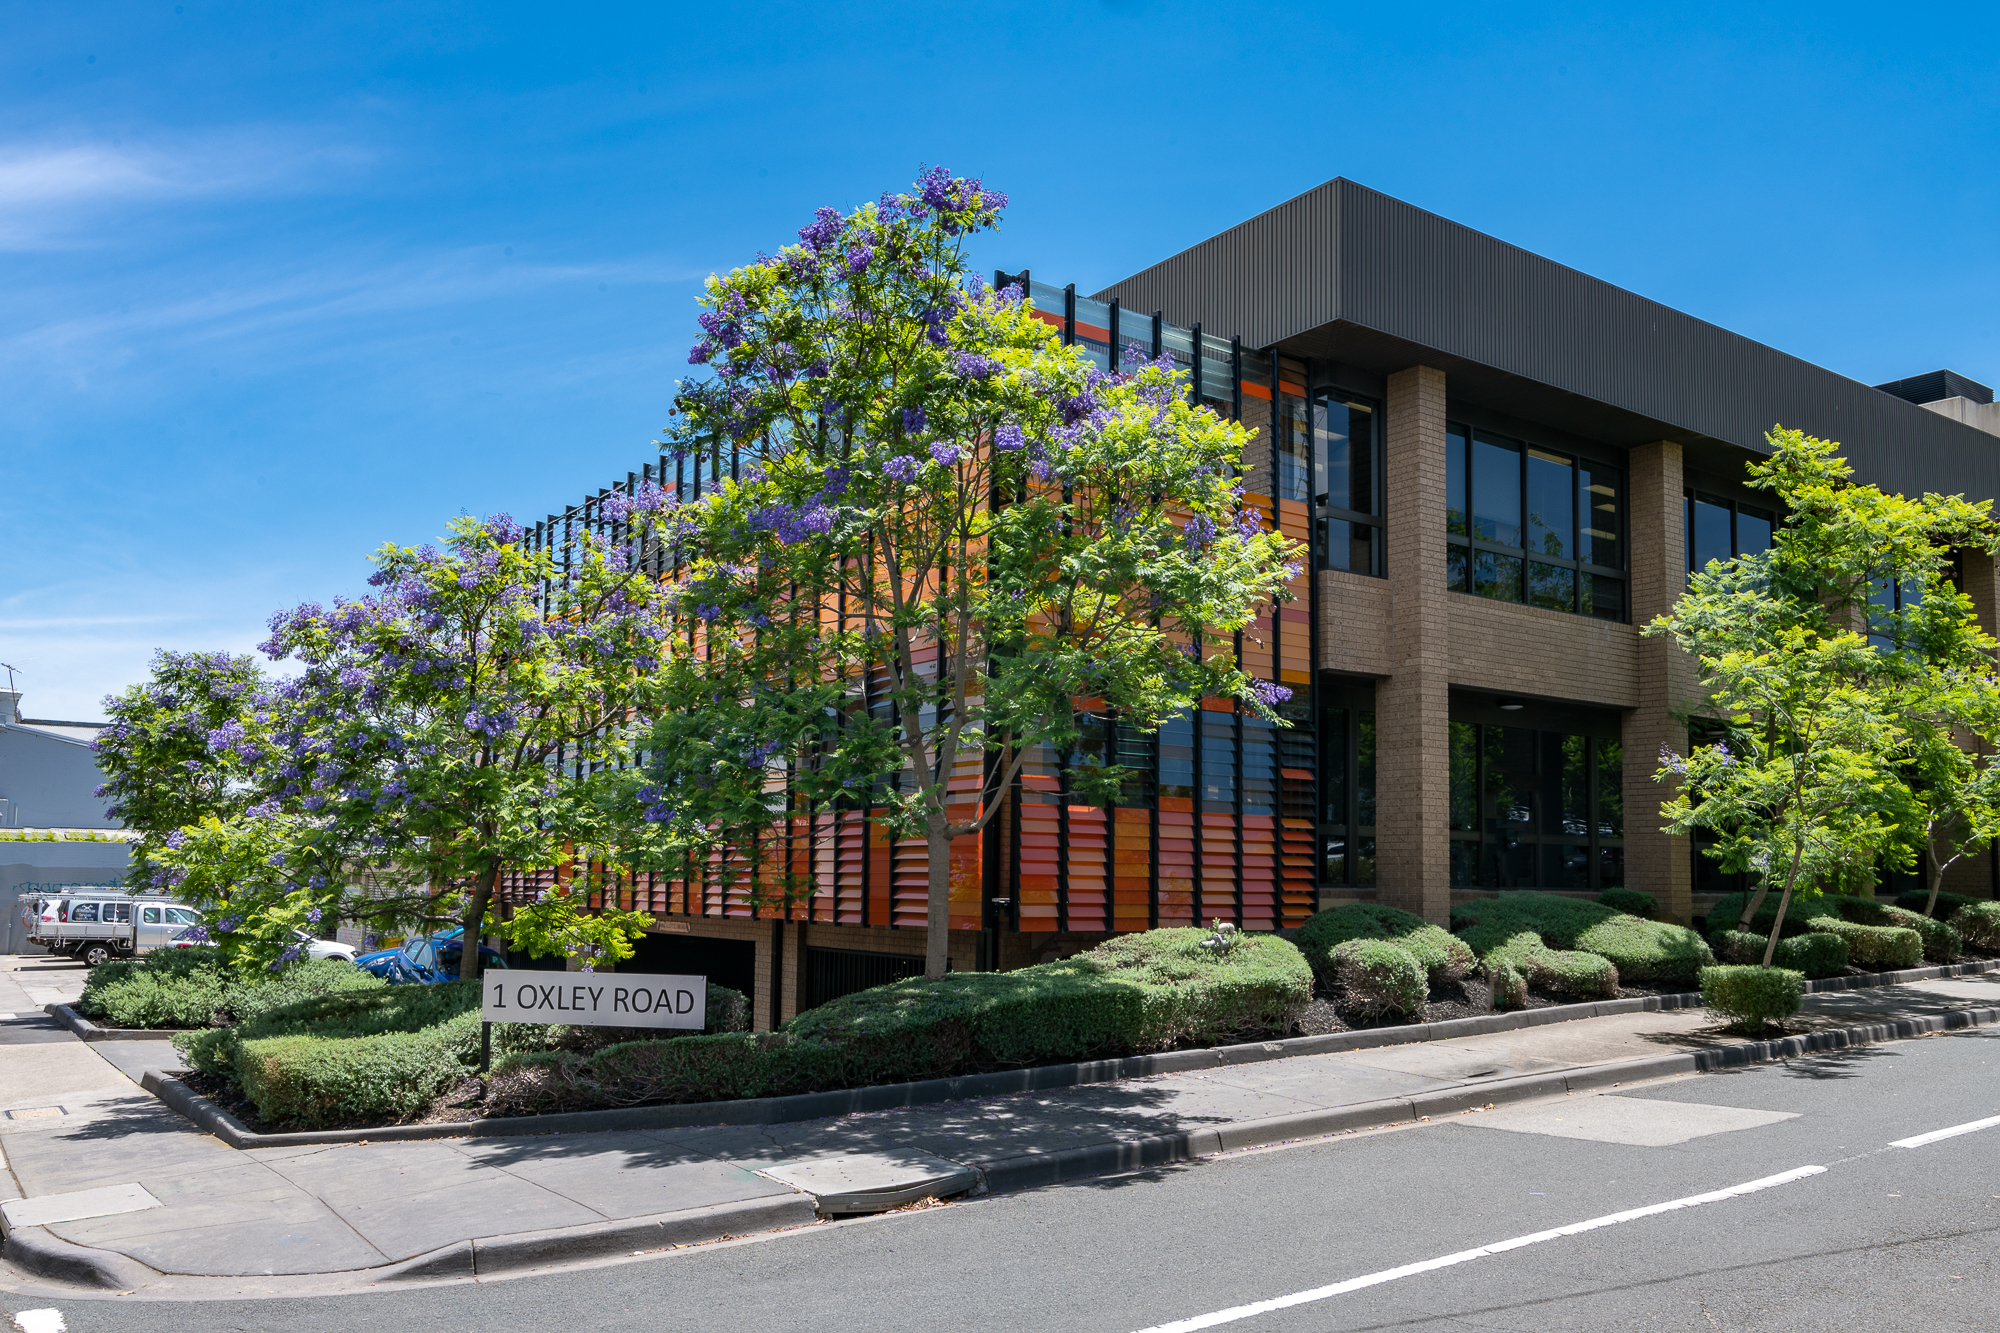 Architectural Photography for Accounting Firm (KSR Partners)